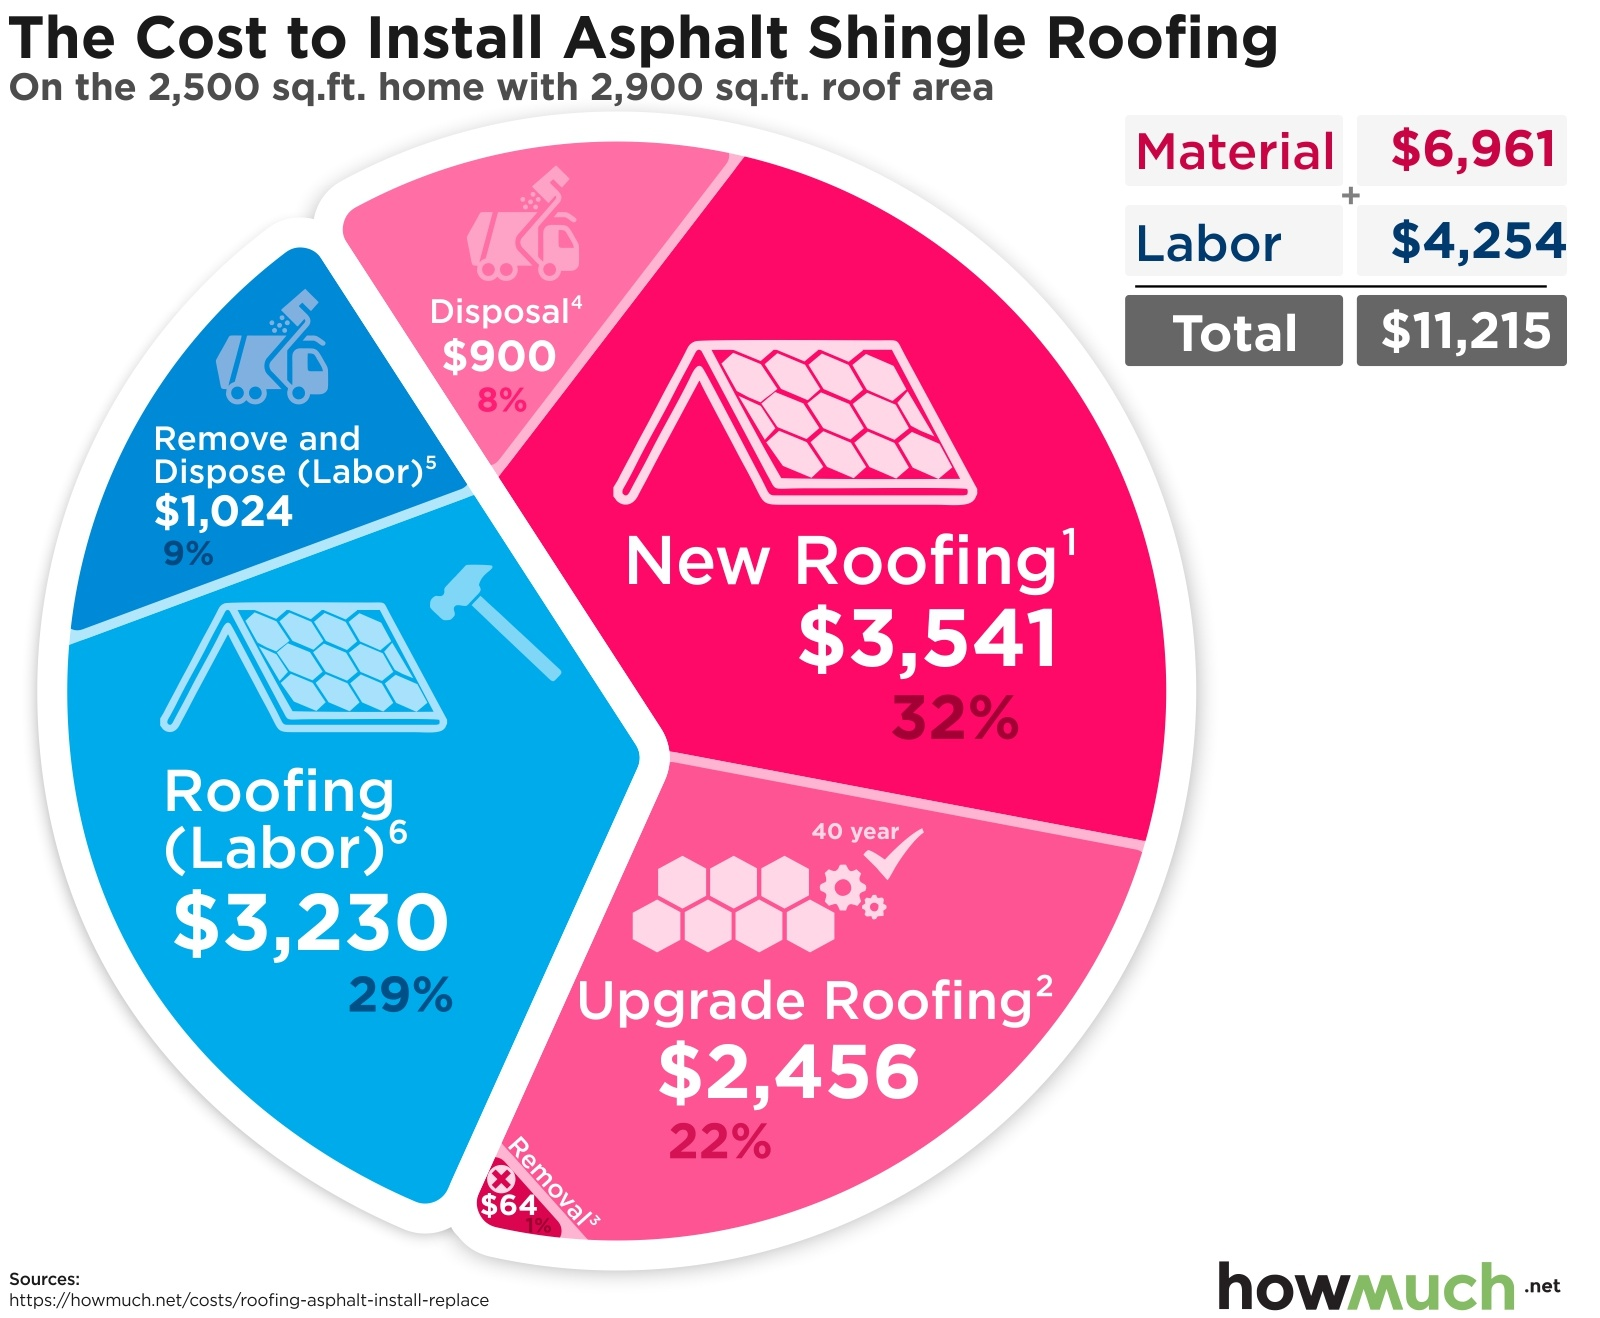 The Cost To Install Asphalt Shingle Roofing